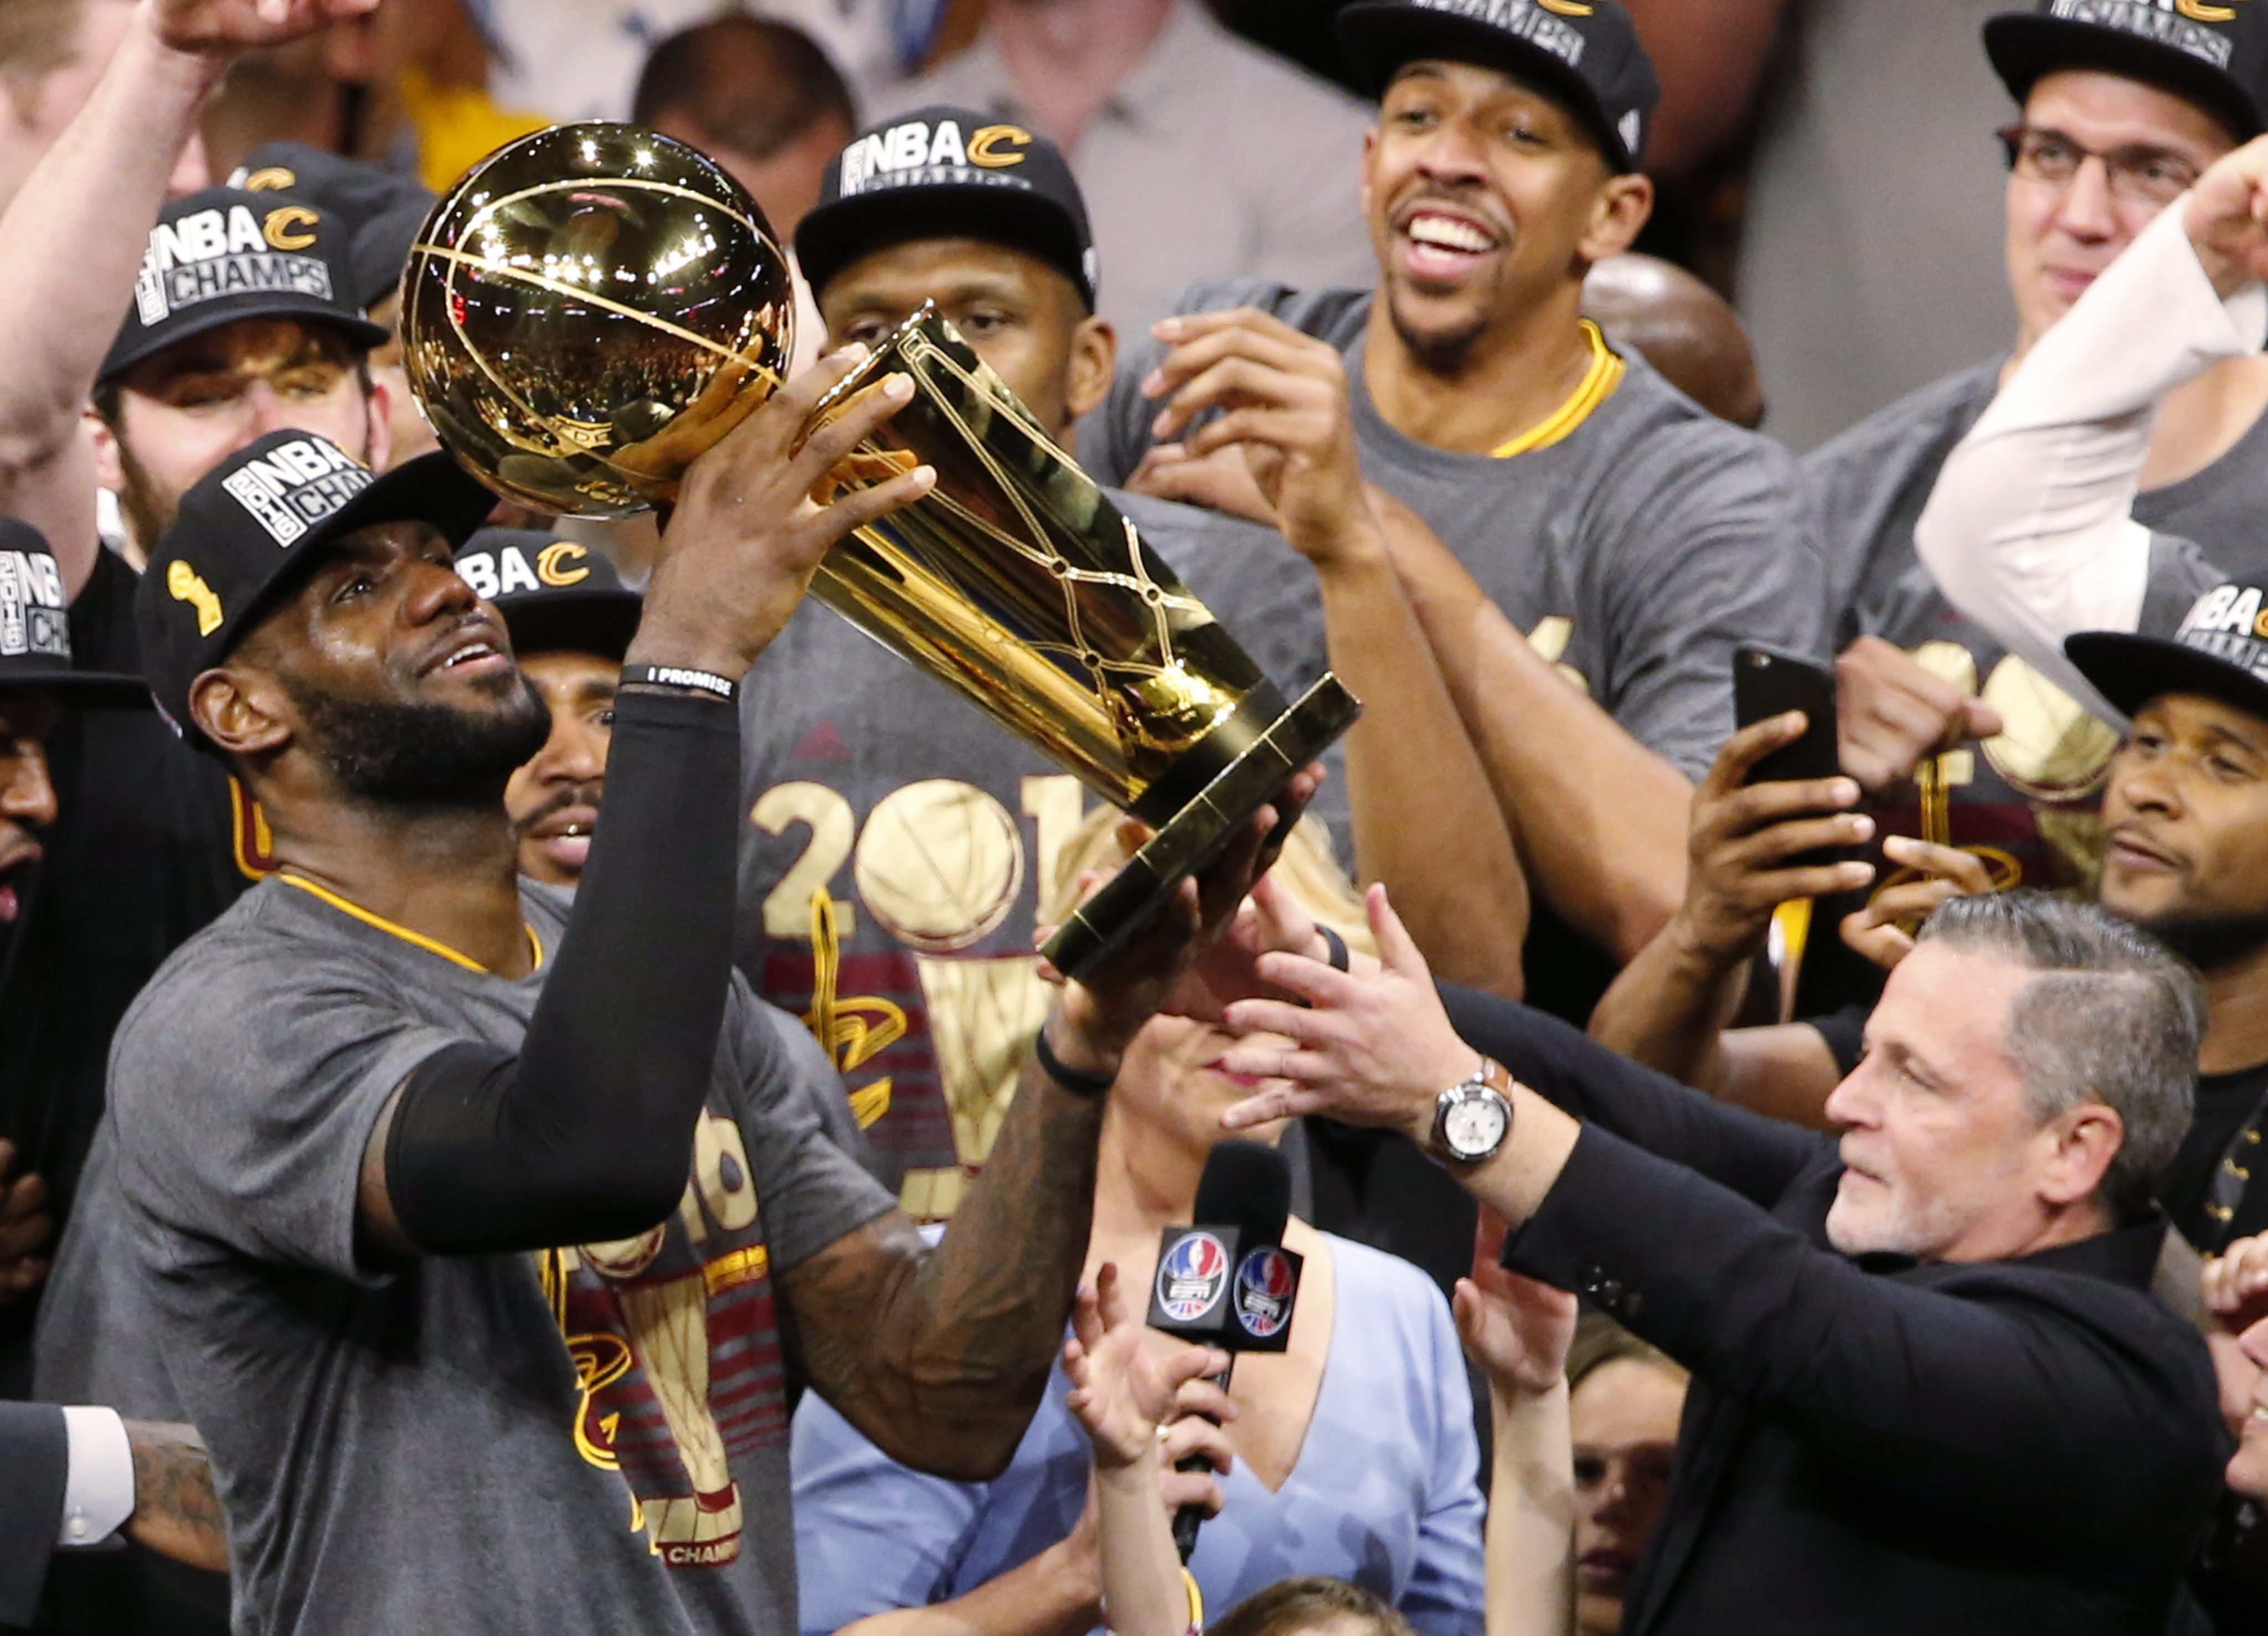 LWS178. Oakland (United States), 19/06/2016.- Cleveland Cavaliers players LeBron James (L) holds up the Larry O'Brien Trophy after beating the Golden State Warriors in the NBA Finals game seven at Oracle Arena in Oakland, California, USA, 19 June 2016. (Baloncesto, Estados Unidos) EFE/EPA/JOHN G. MABANGLO CORBIS OUT